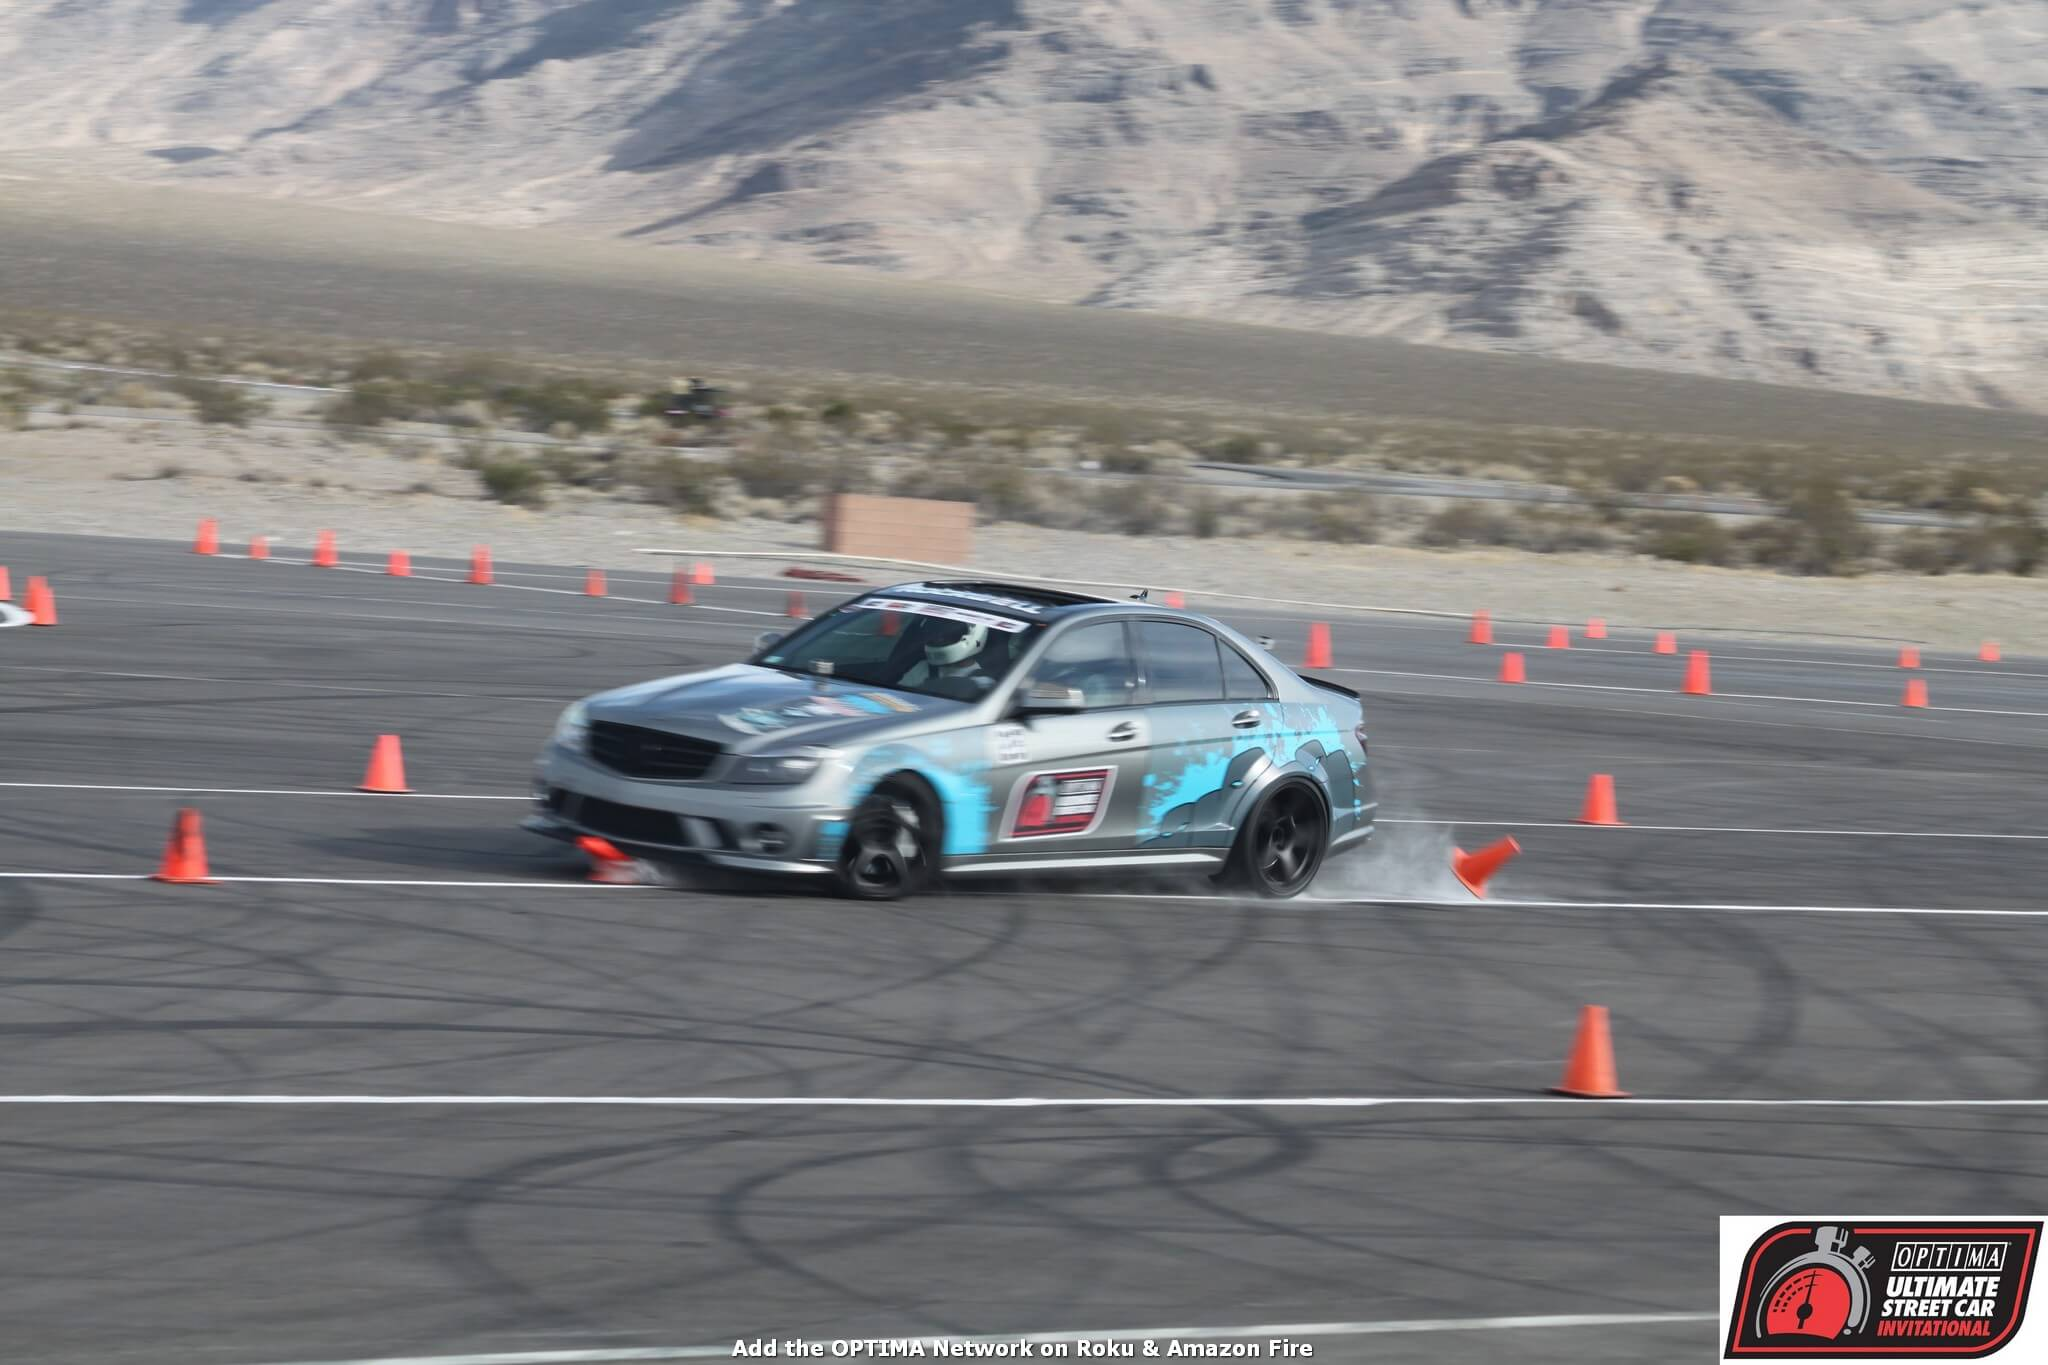 p-Kevin-Kraack-2008-Mercedes-Benz-C63-AMG-OUSCI-2010_2